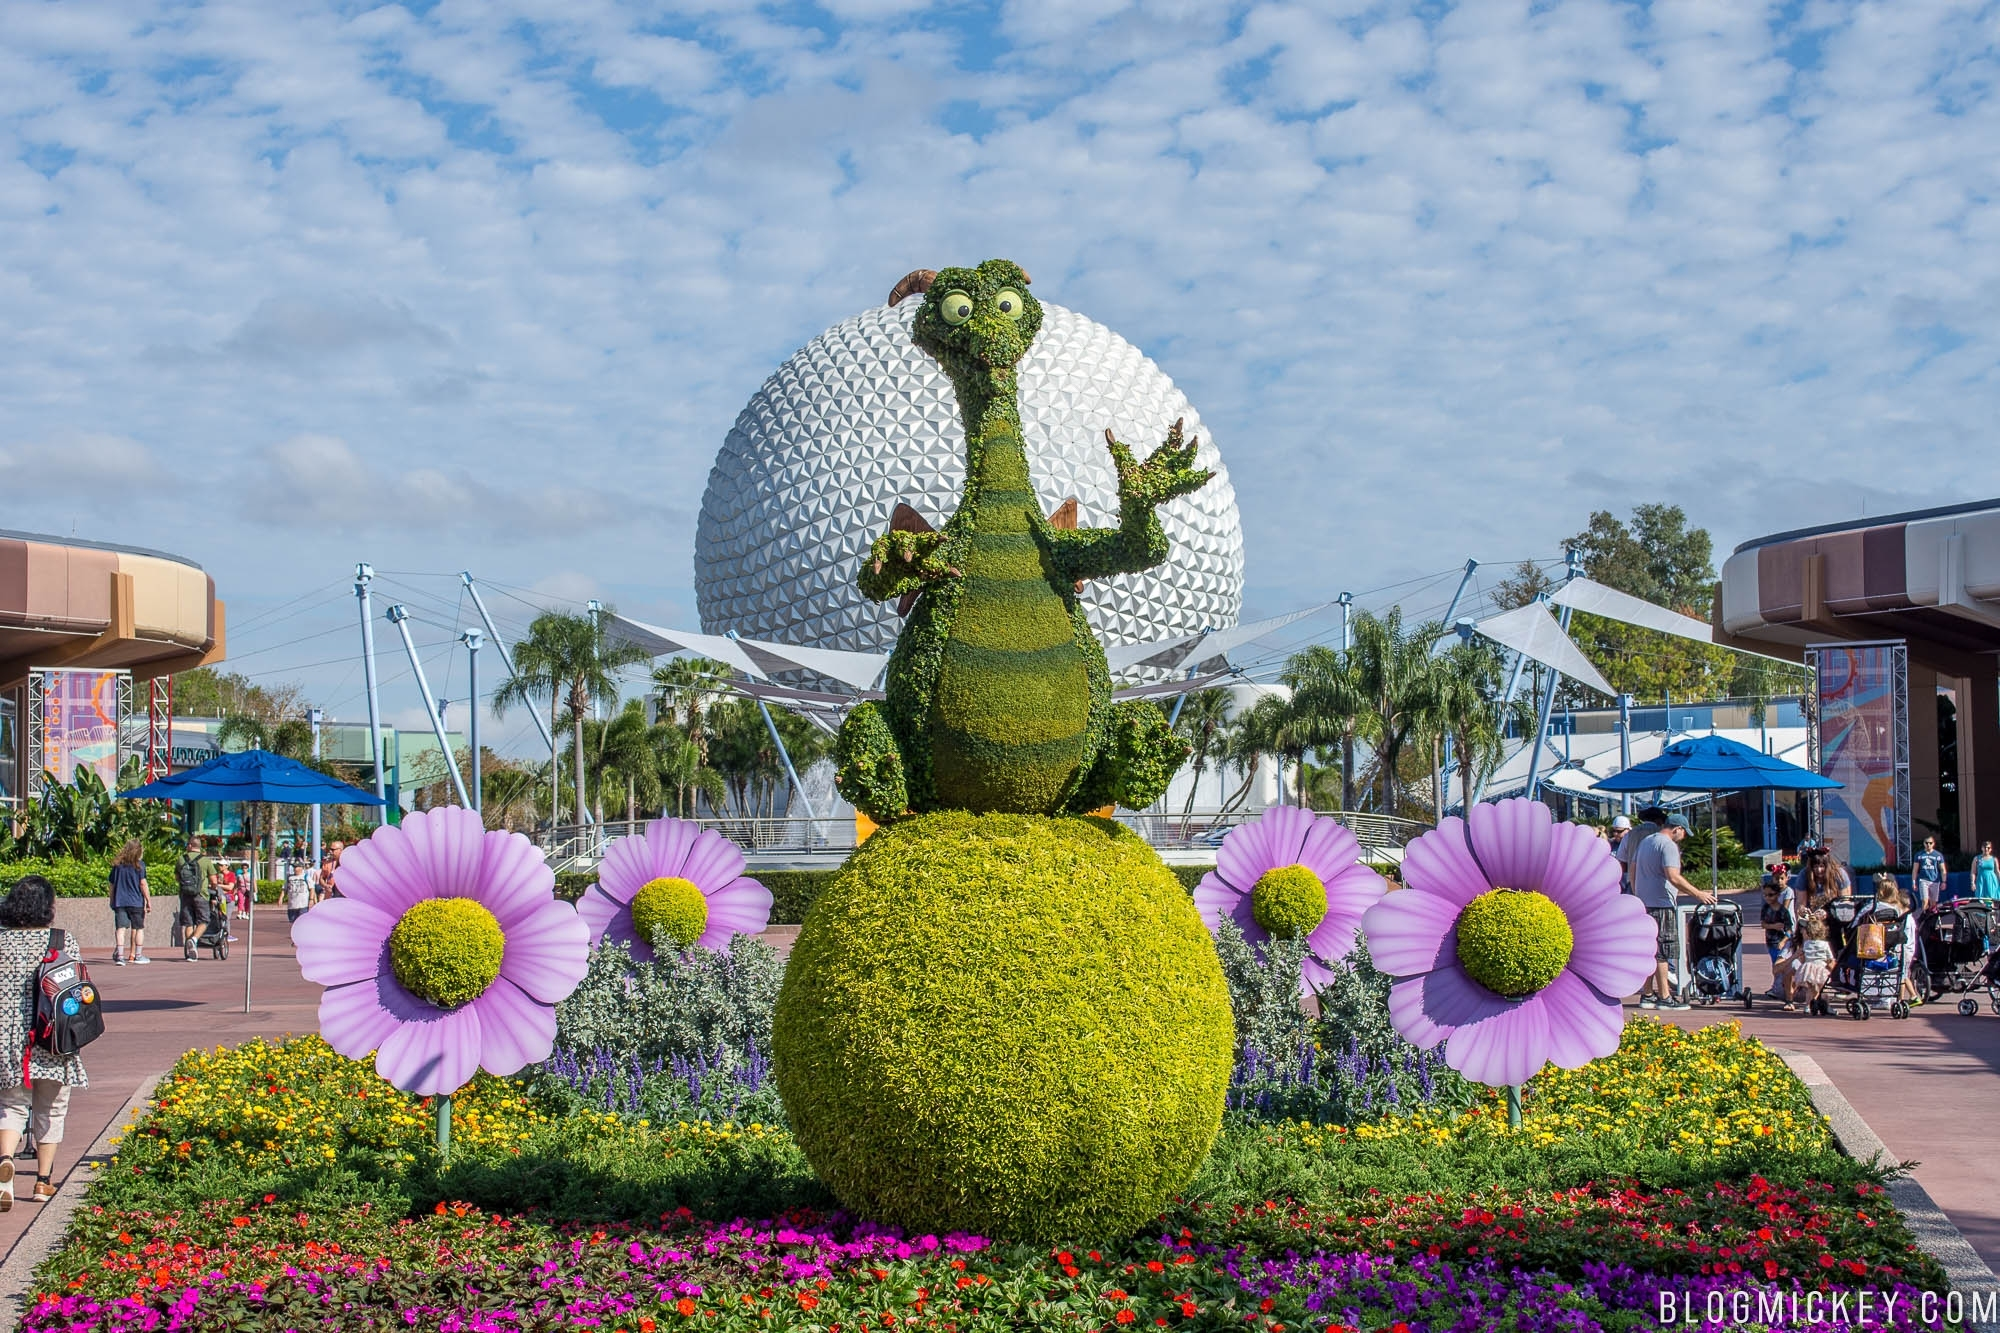 Dates Announced For 2019 Epcot International Festival Of The Arts with regard to Flower Garden Festival 2019 Concerts